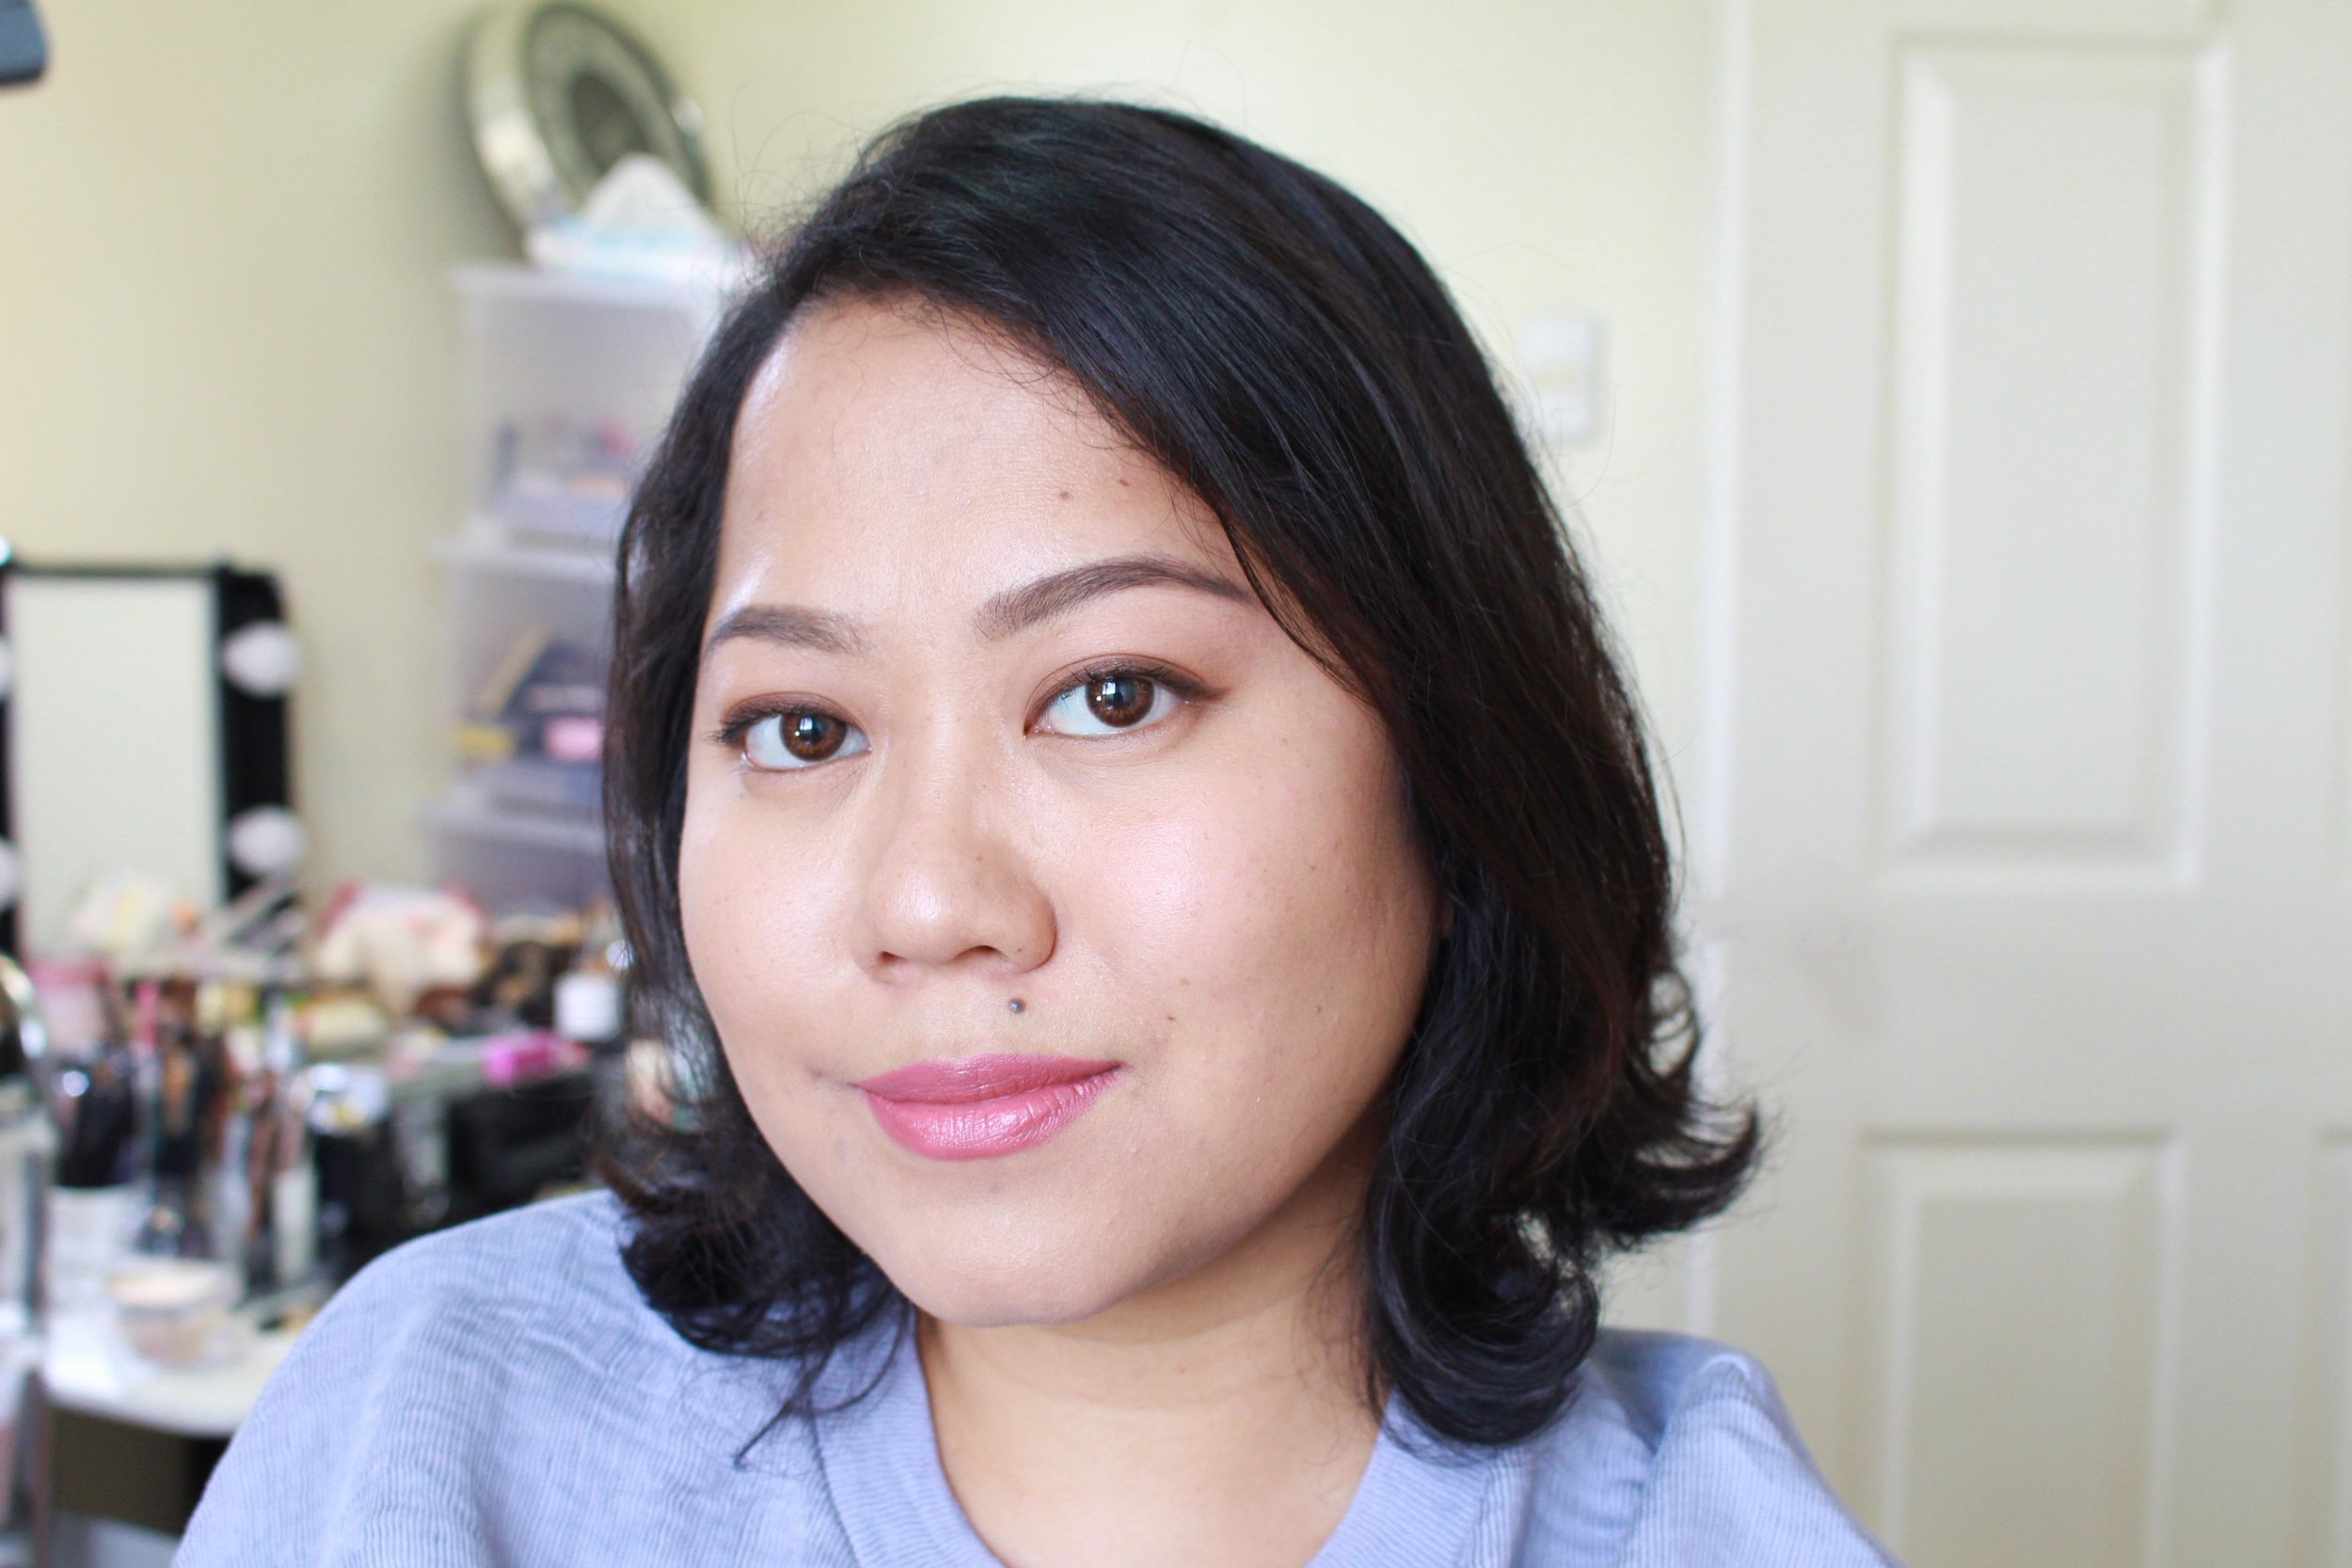 I used the Catrice Prime And Fine Waterproof Mattifying Powder for setting my (light) foundation here